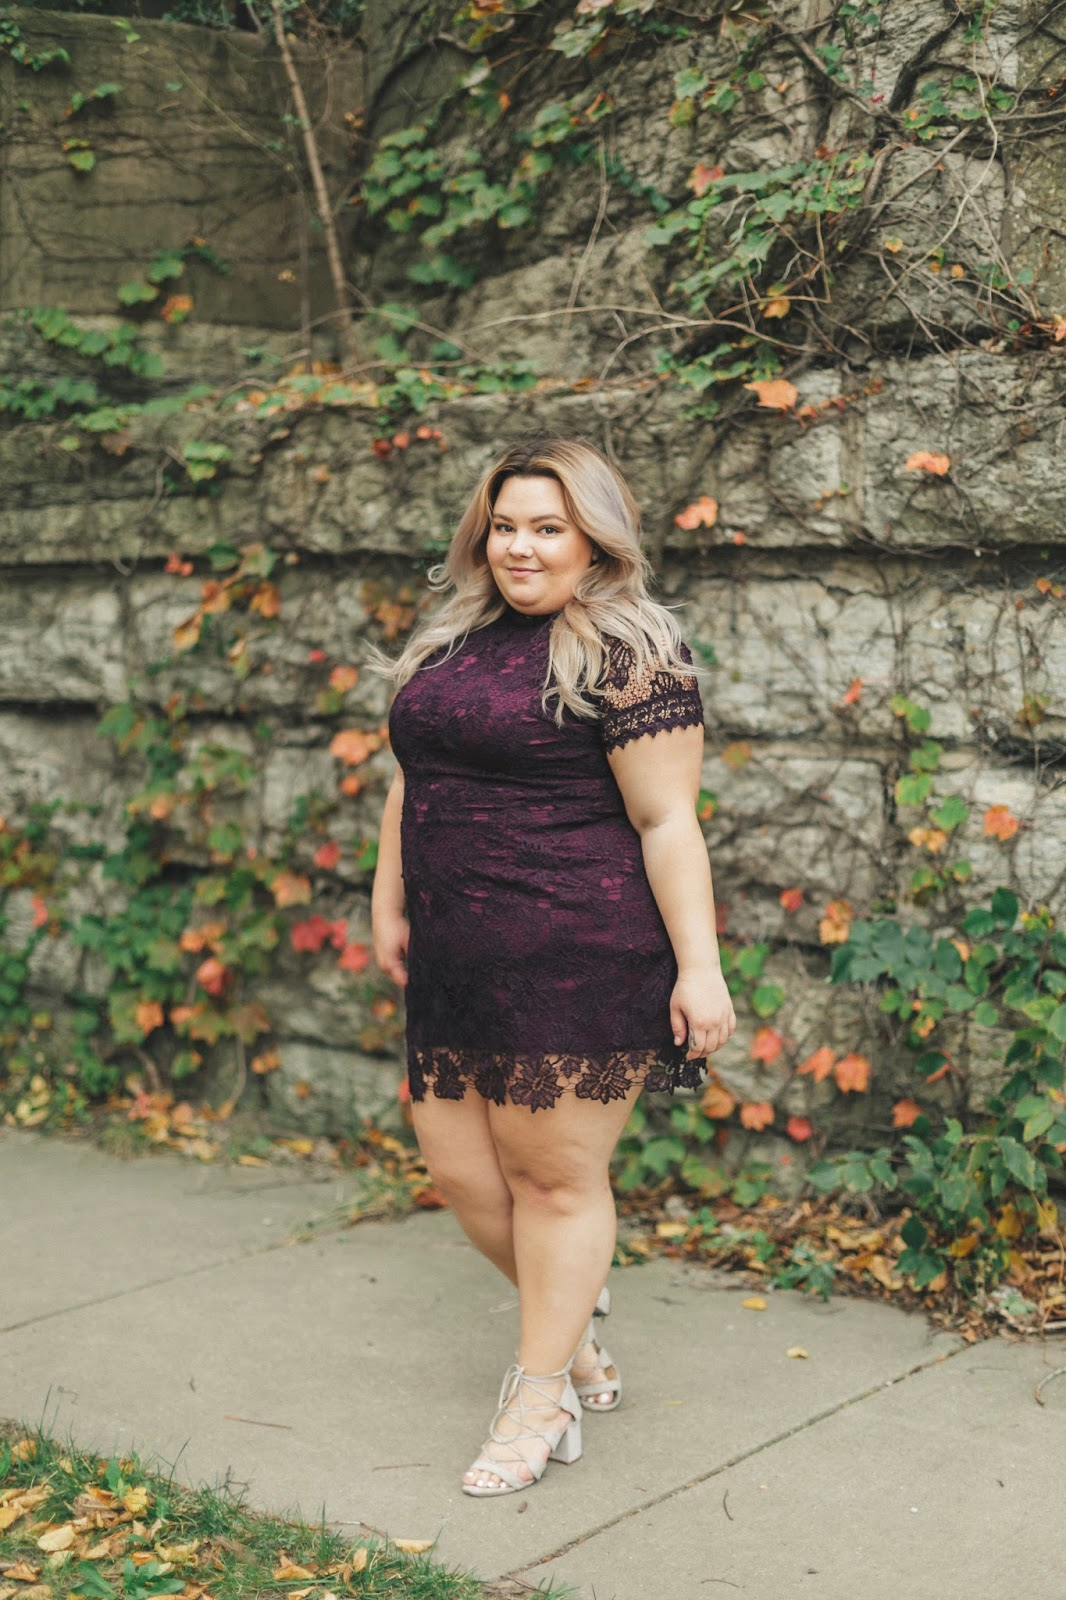 Chicago fashion blogger, natalie in the city, fall plus size fashion, fatshion, curves and confidence, Chicago plus size model, affordable plus size clothing, natalie craig, plus size clothes, yours clothing, cheap plus size clothes, plus size lace dresses, Chicago influencer